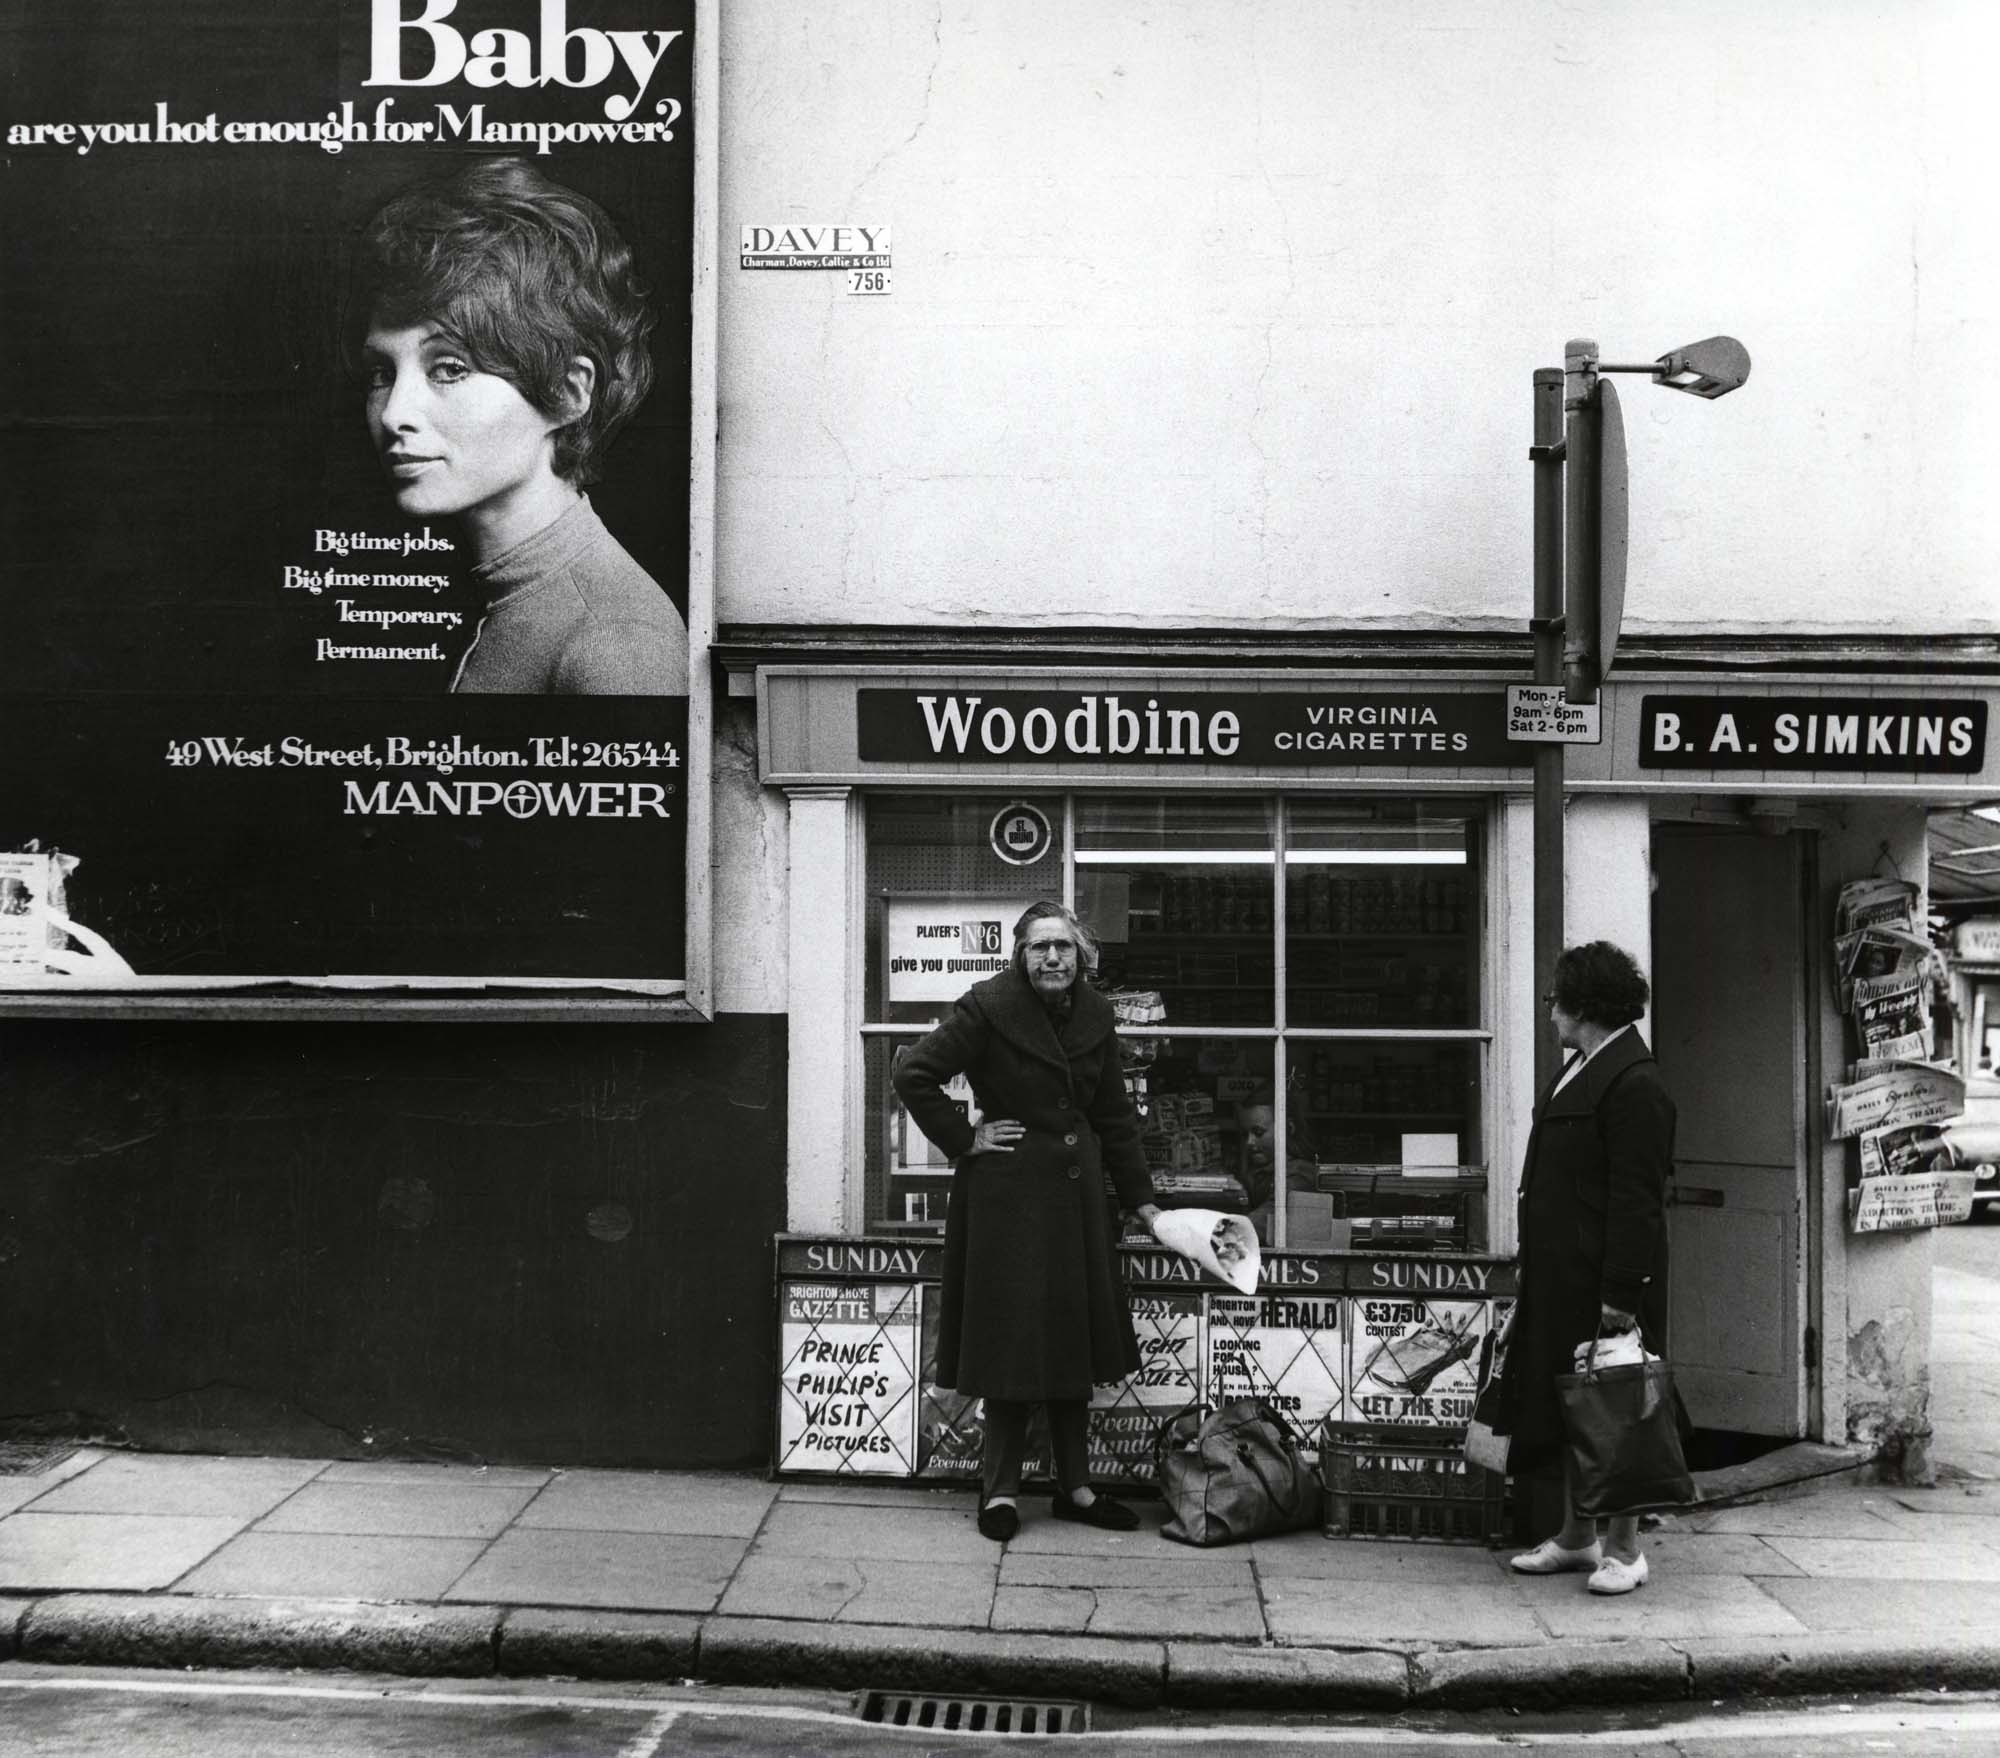 a photo of two elderly ladies on a street outside a shop beneath a hording with a young model featured on it